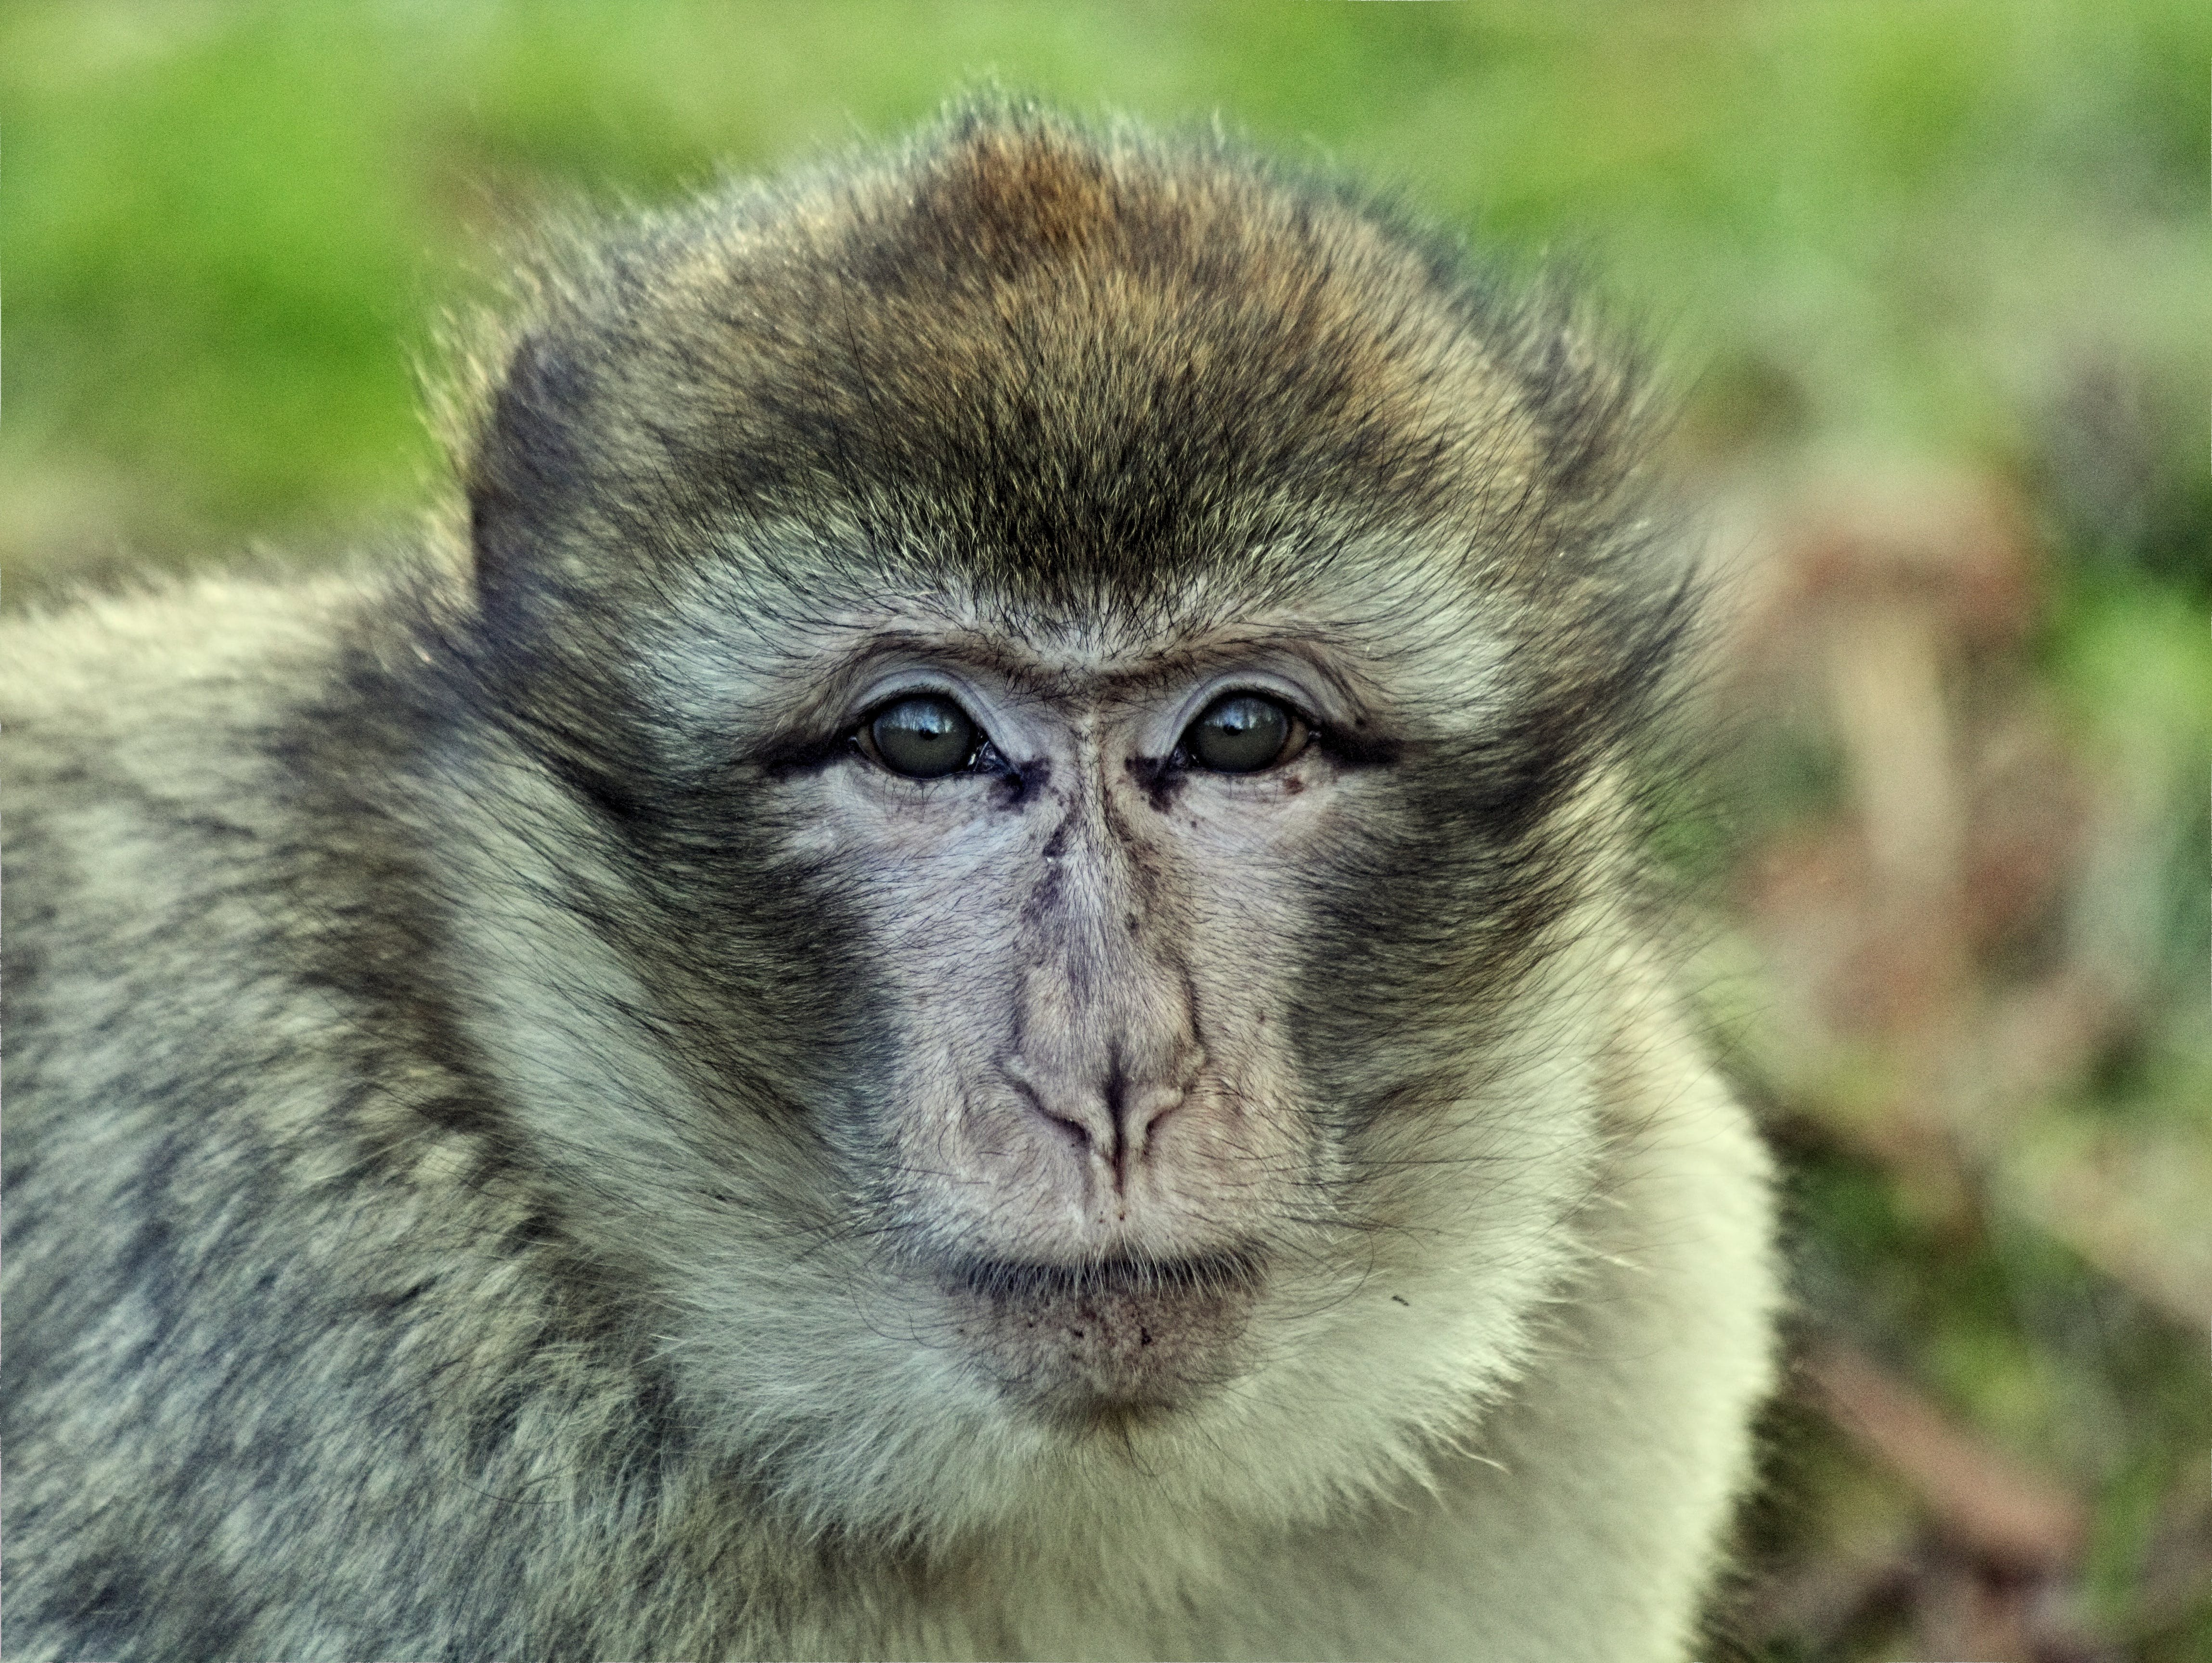 Beige and Brown Monkey